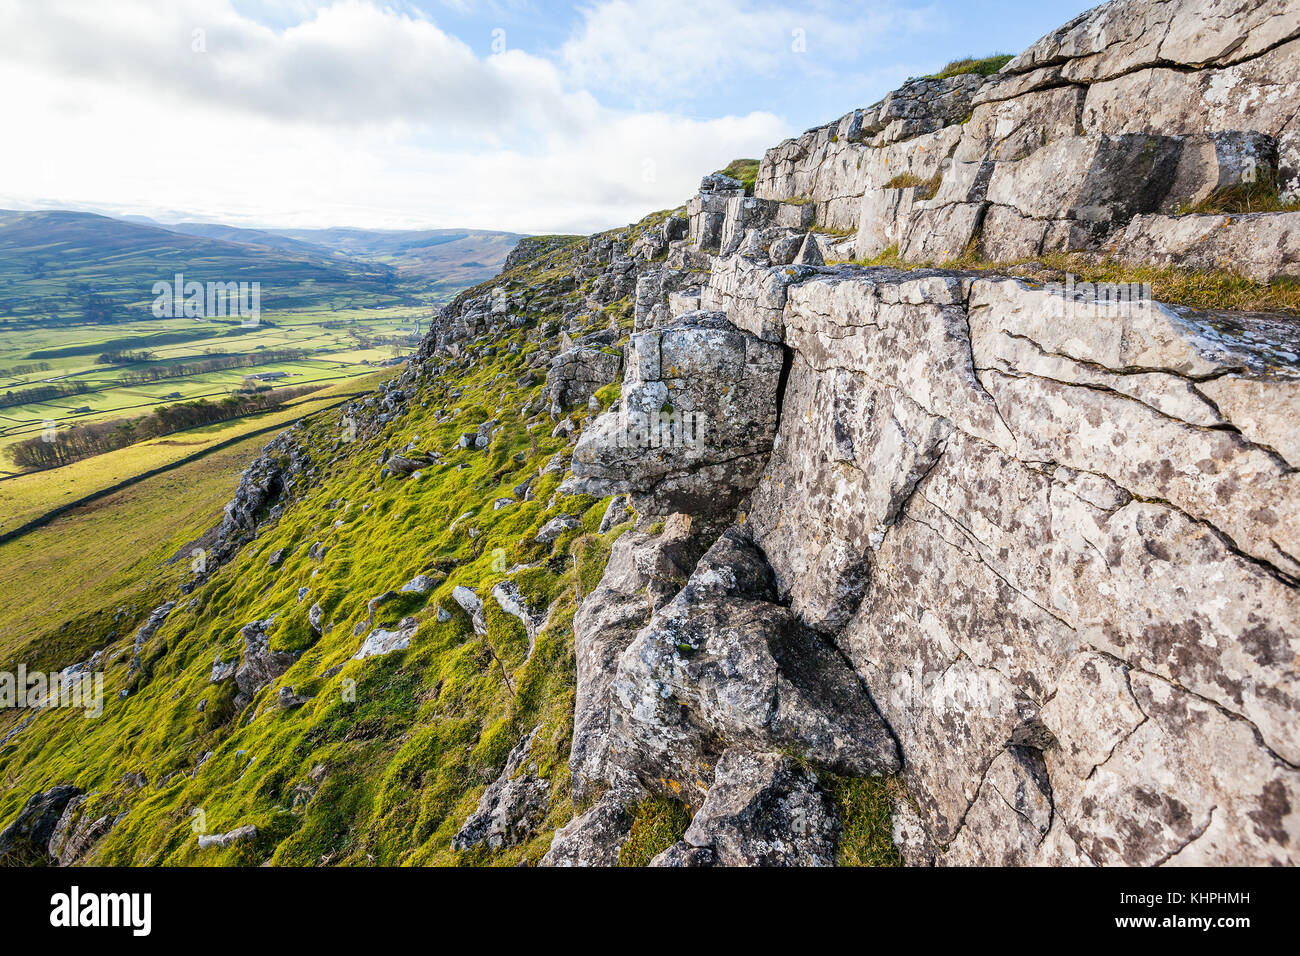 Rocky cliff with weathered limestone on Stags Fell in the Yorkshire Dales, England. Valley of Wensleydale can be - Stock Image